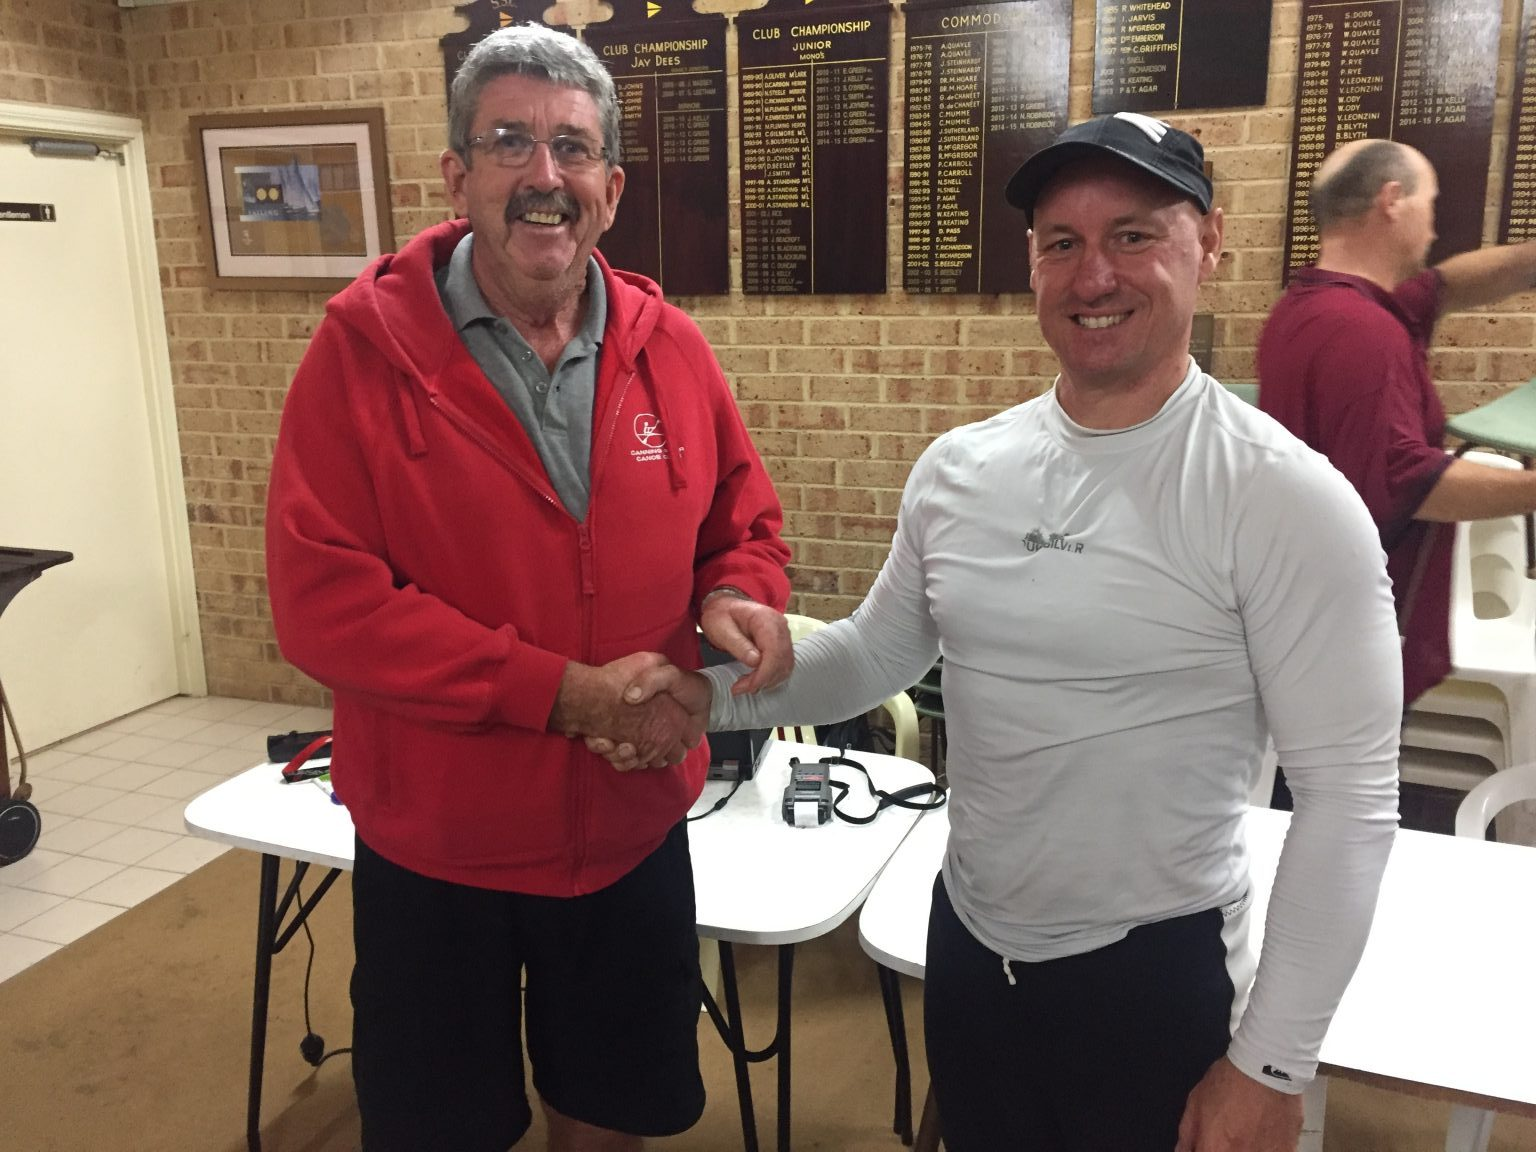 Tues 18th April 2017 : Tonight's photo shows club Committee Member Dave Griffiths presenting Greg Macham with a movie voucher